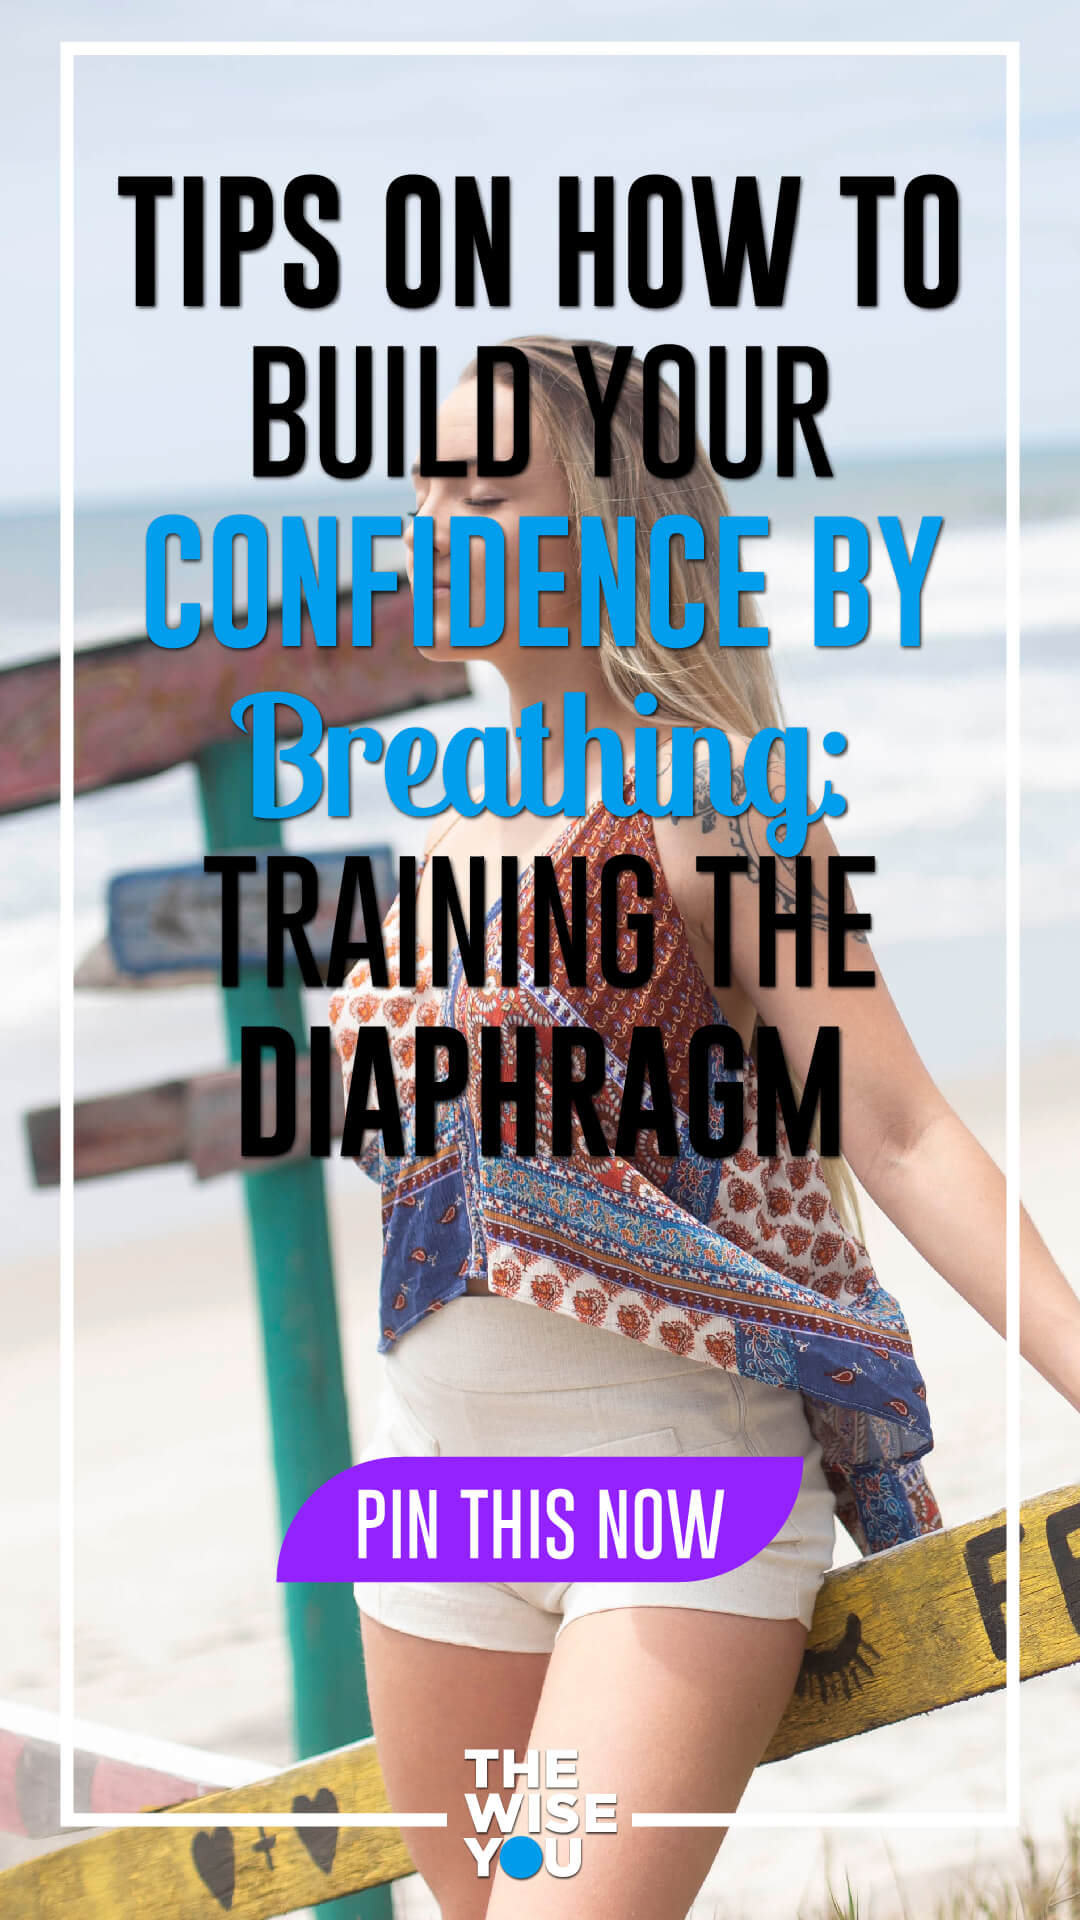 Tips On How To Build Your Confidence By Breathing: Training The Diaphragm